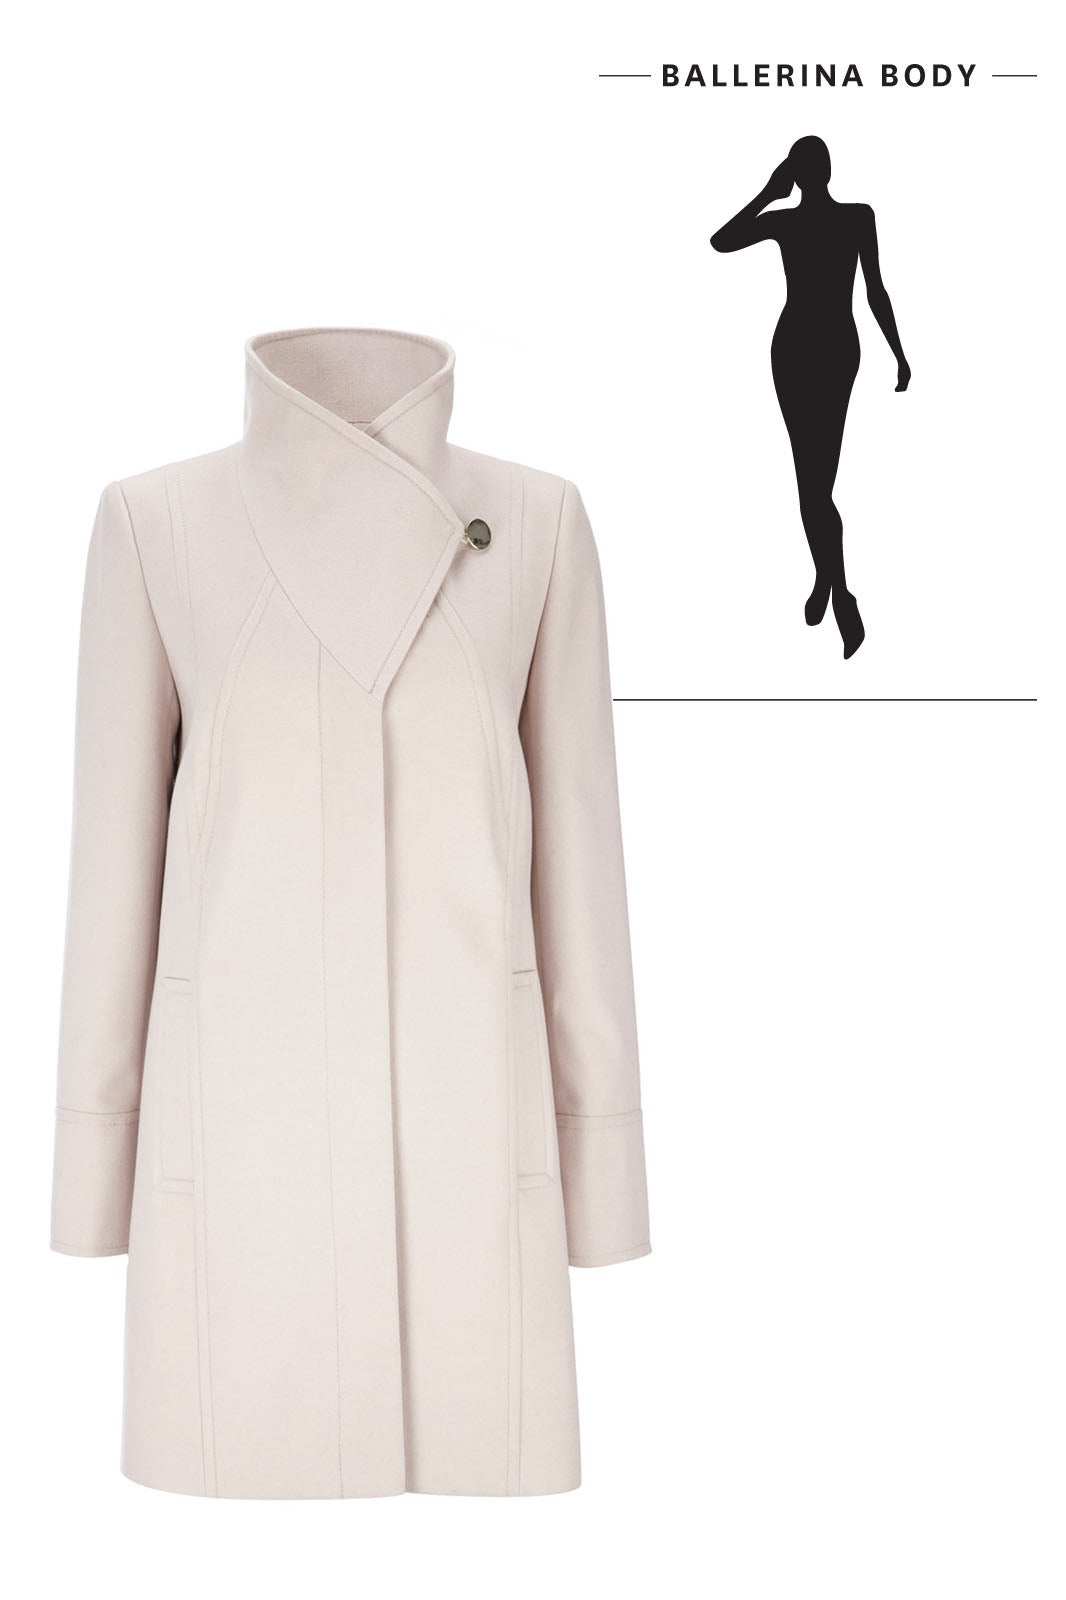 Shop Your Shape: The Most Flattering Coats for Your Body Type